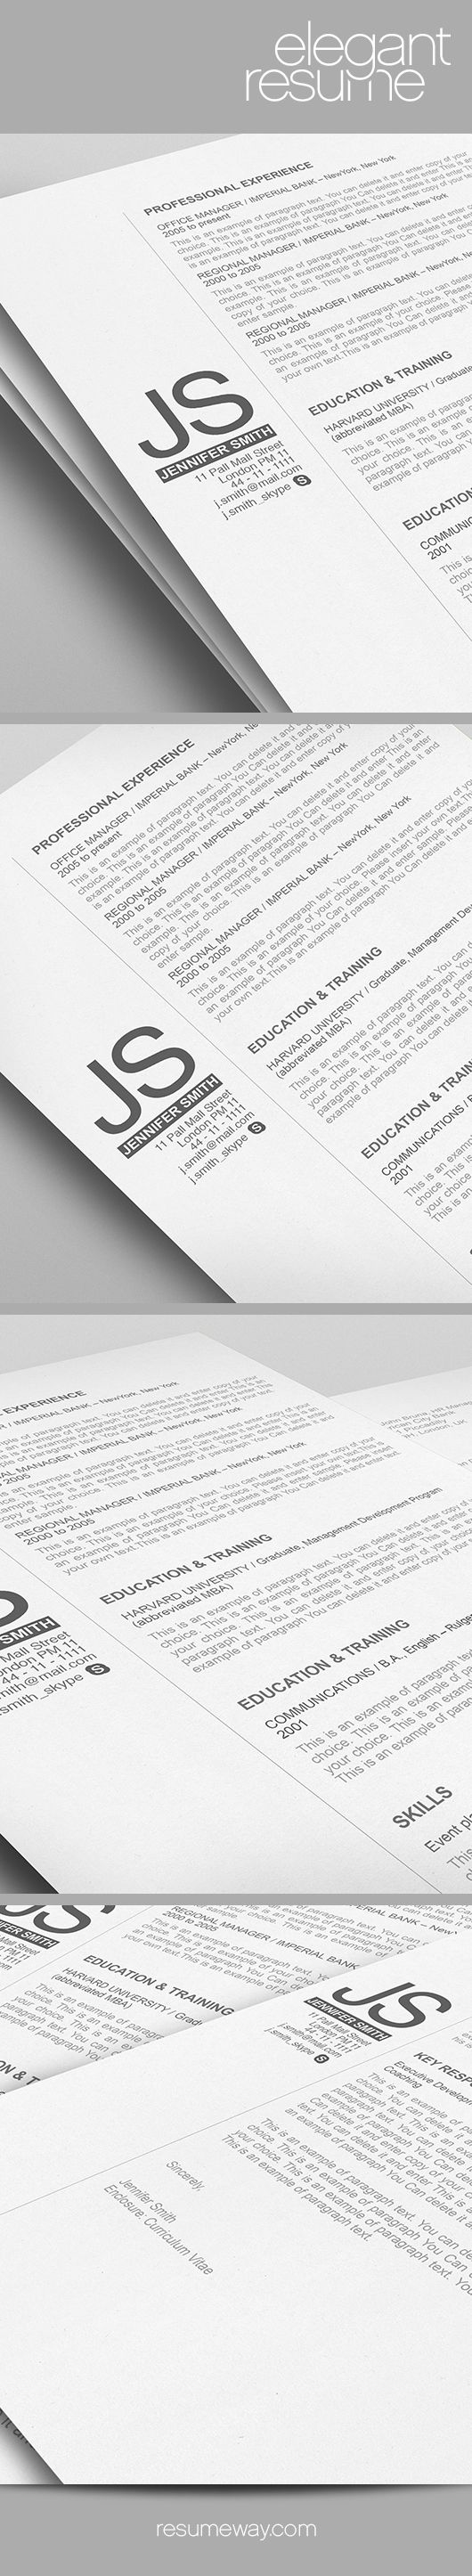 Best Resume Ideas Images On   Professional Resume